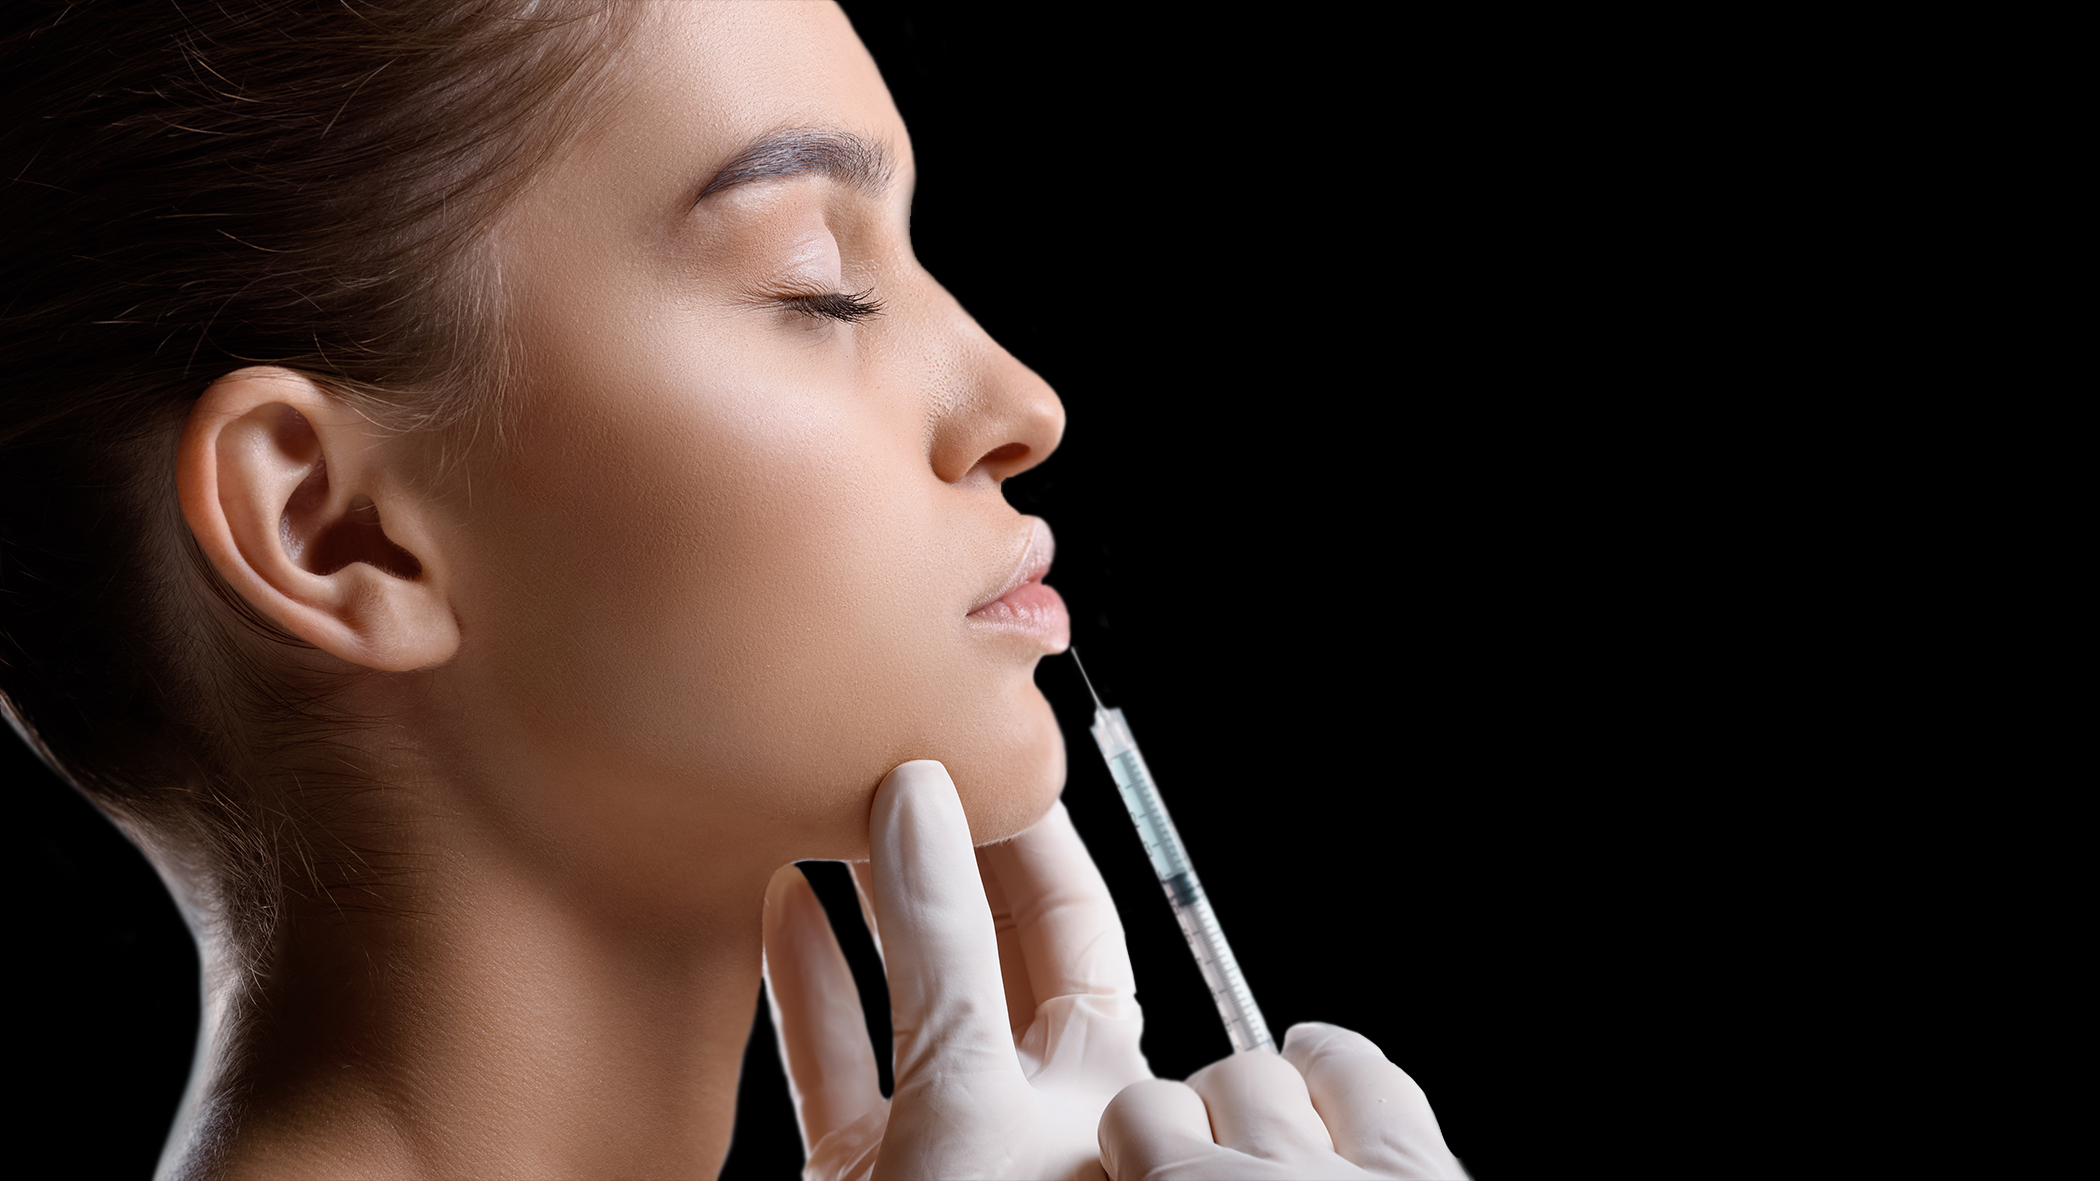 Portrait of attractive woman getting botox injection